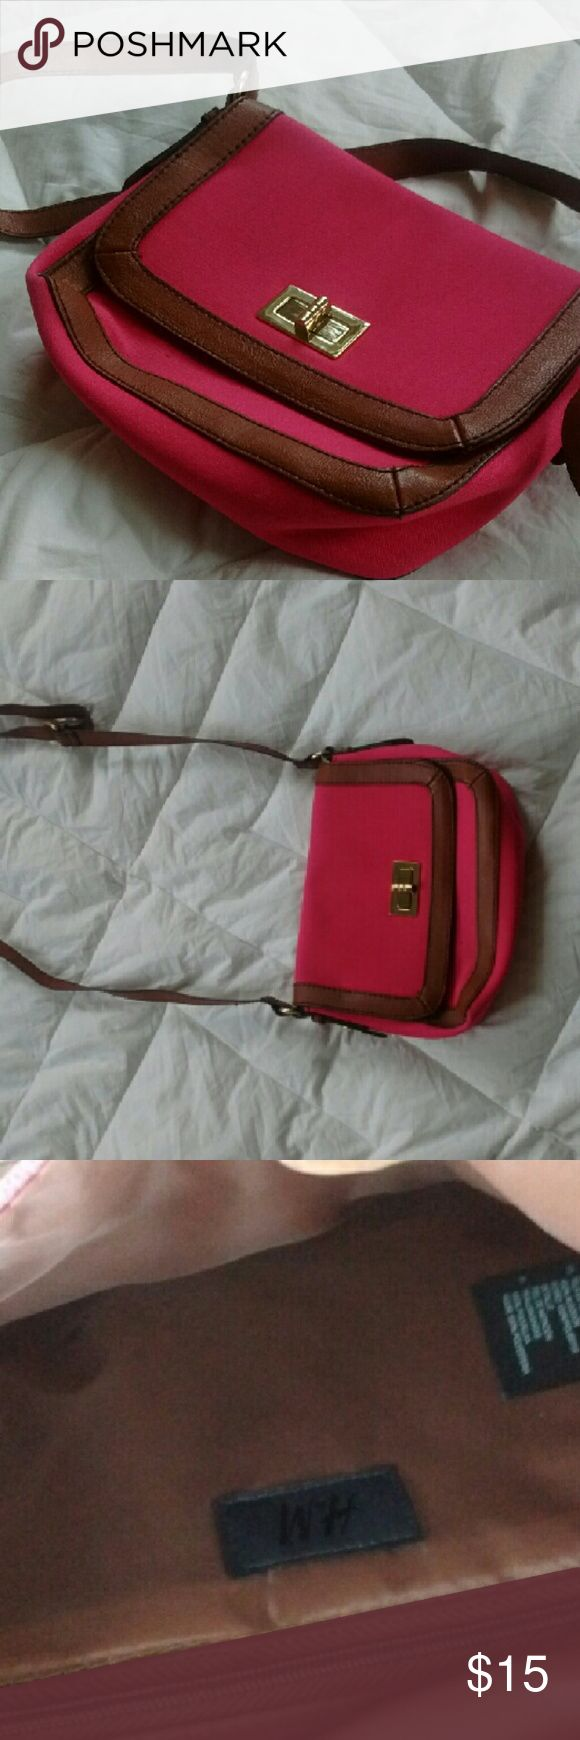 H&M Purse. Pink and brown with gold detailing. Super cute and functional. Offers welcome! H&M Bags Crossbody Bags